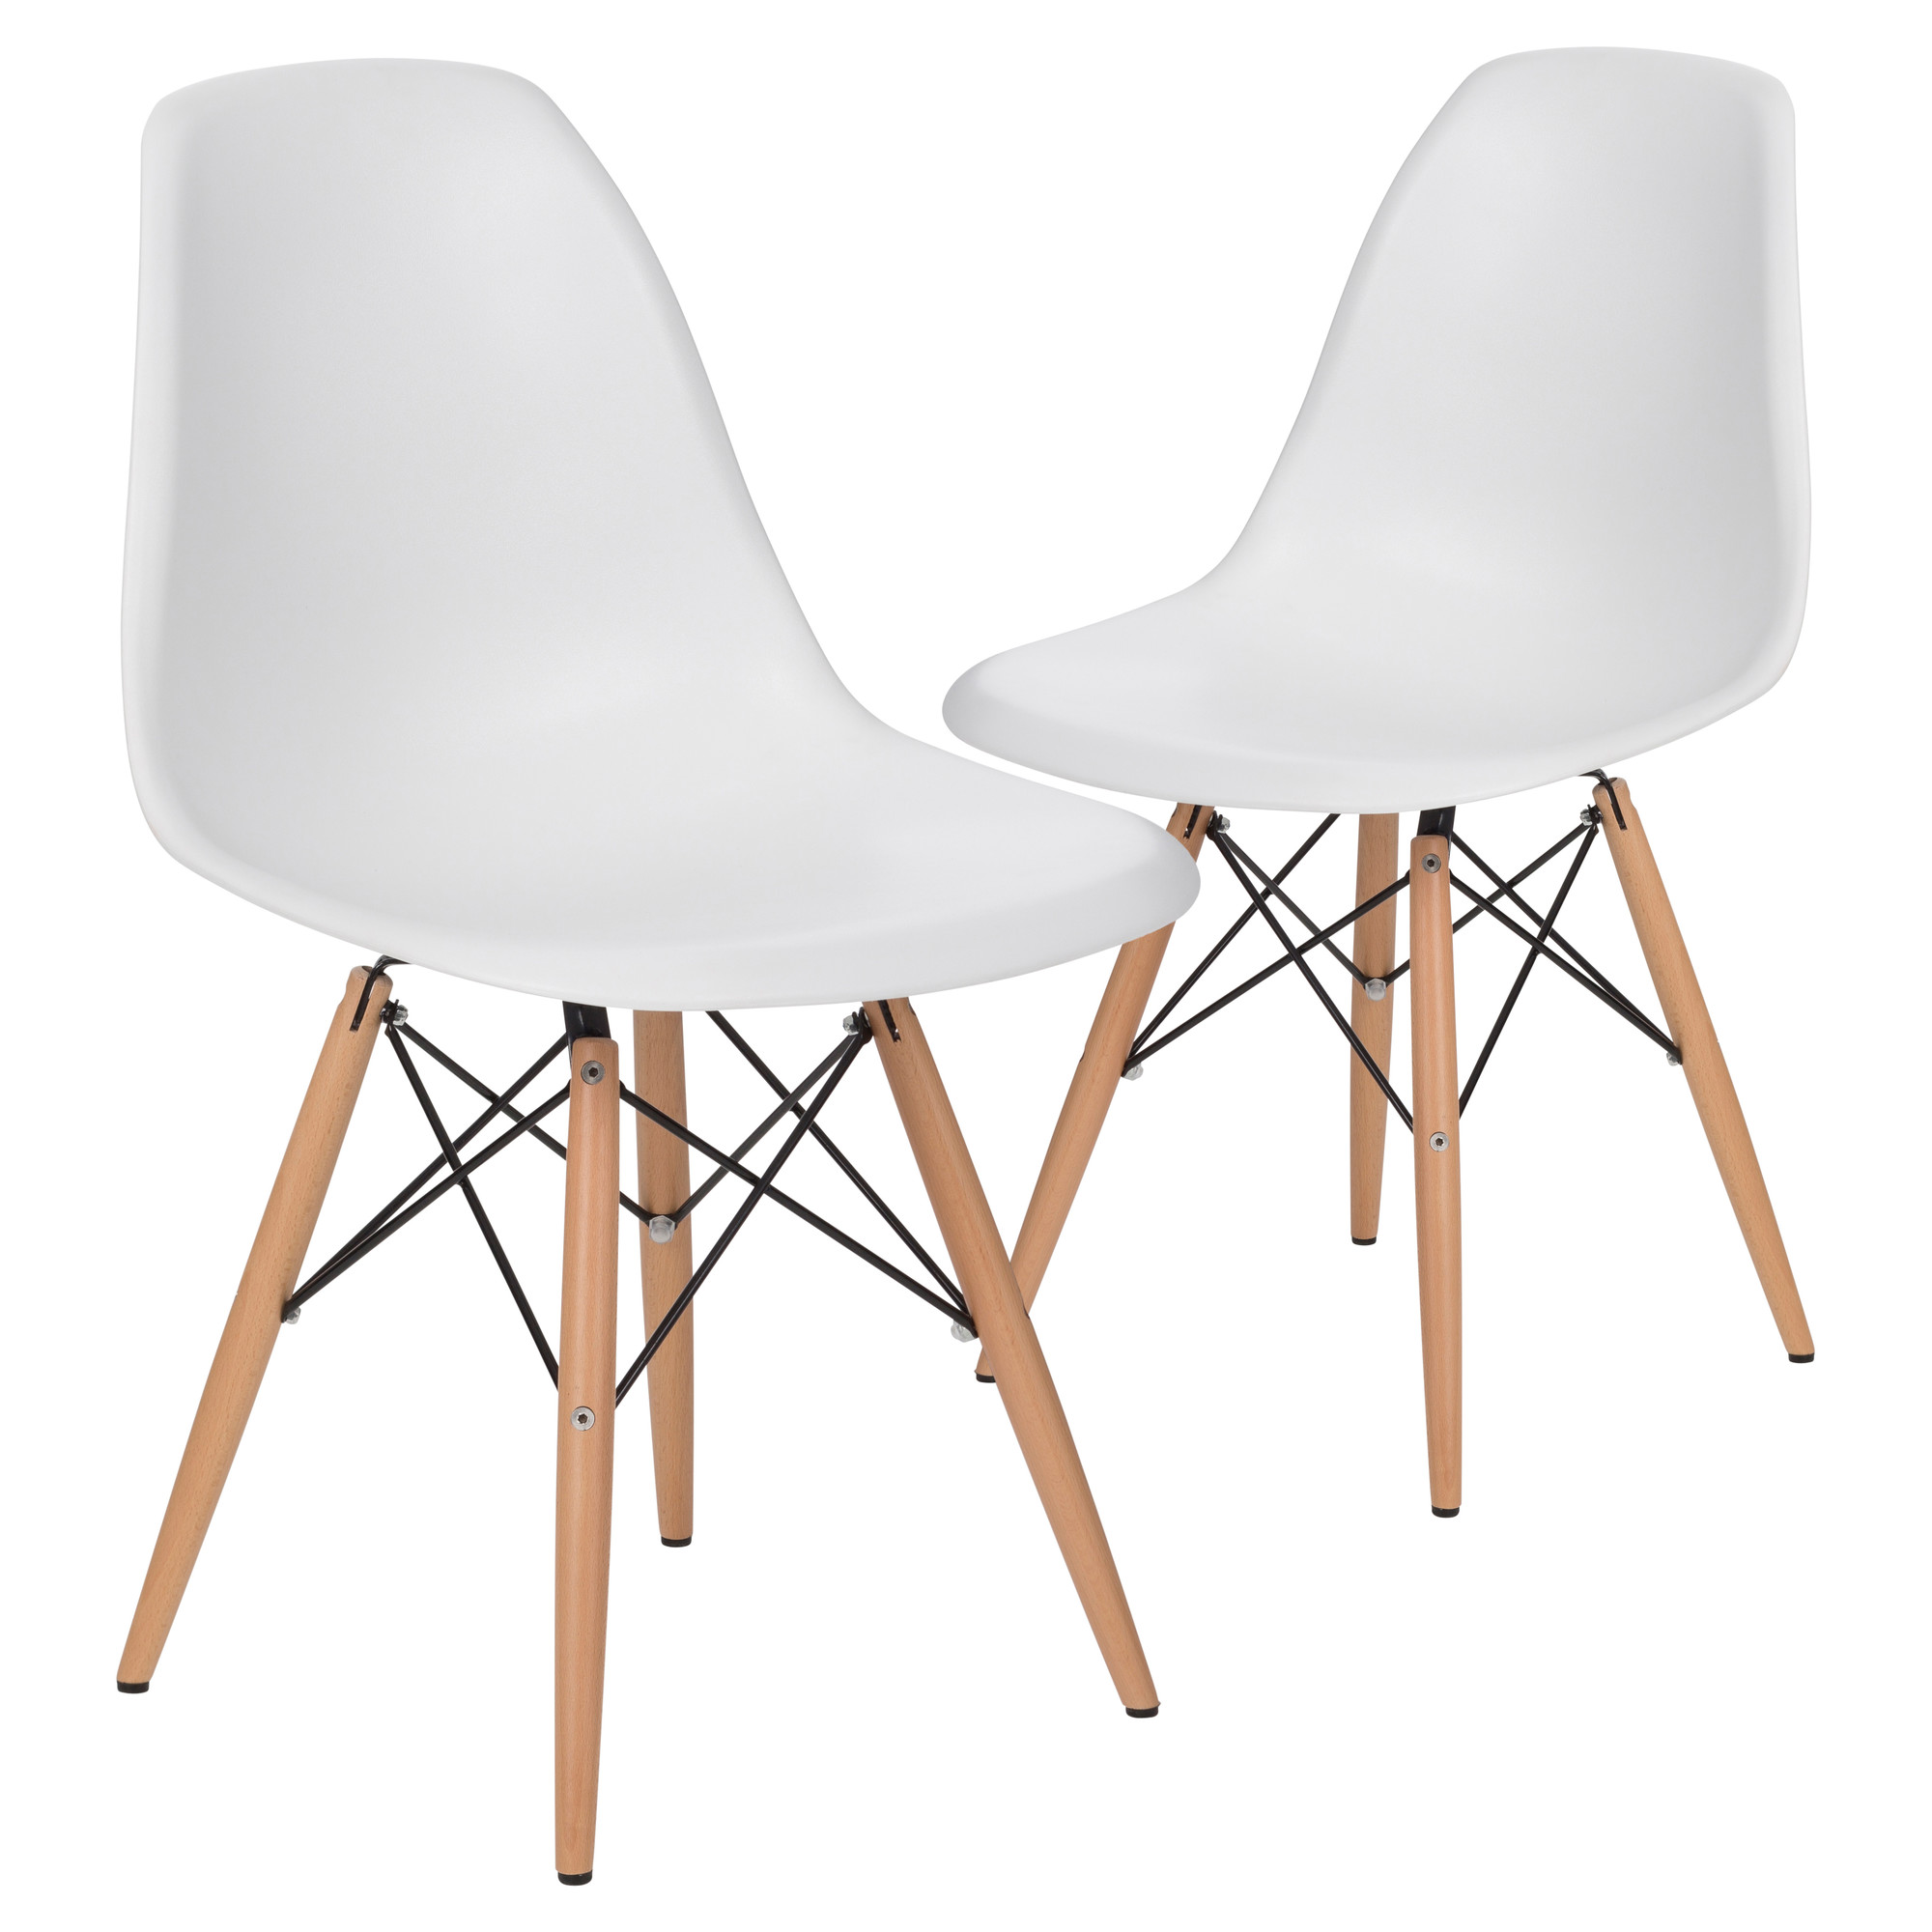 New eames replica dsw dining side chair ebay for Eames stuhl dsw reproduktion